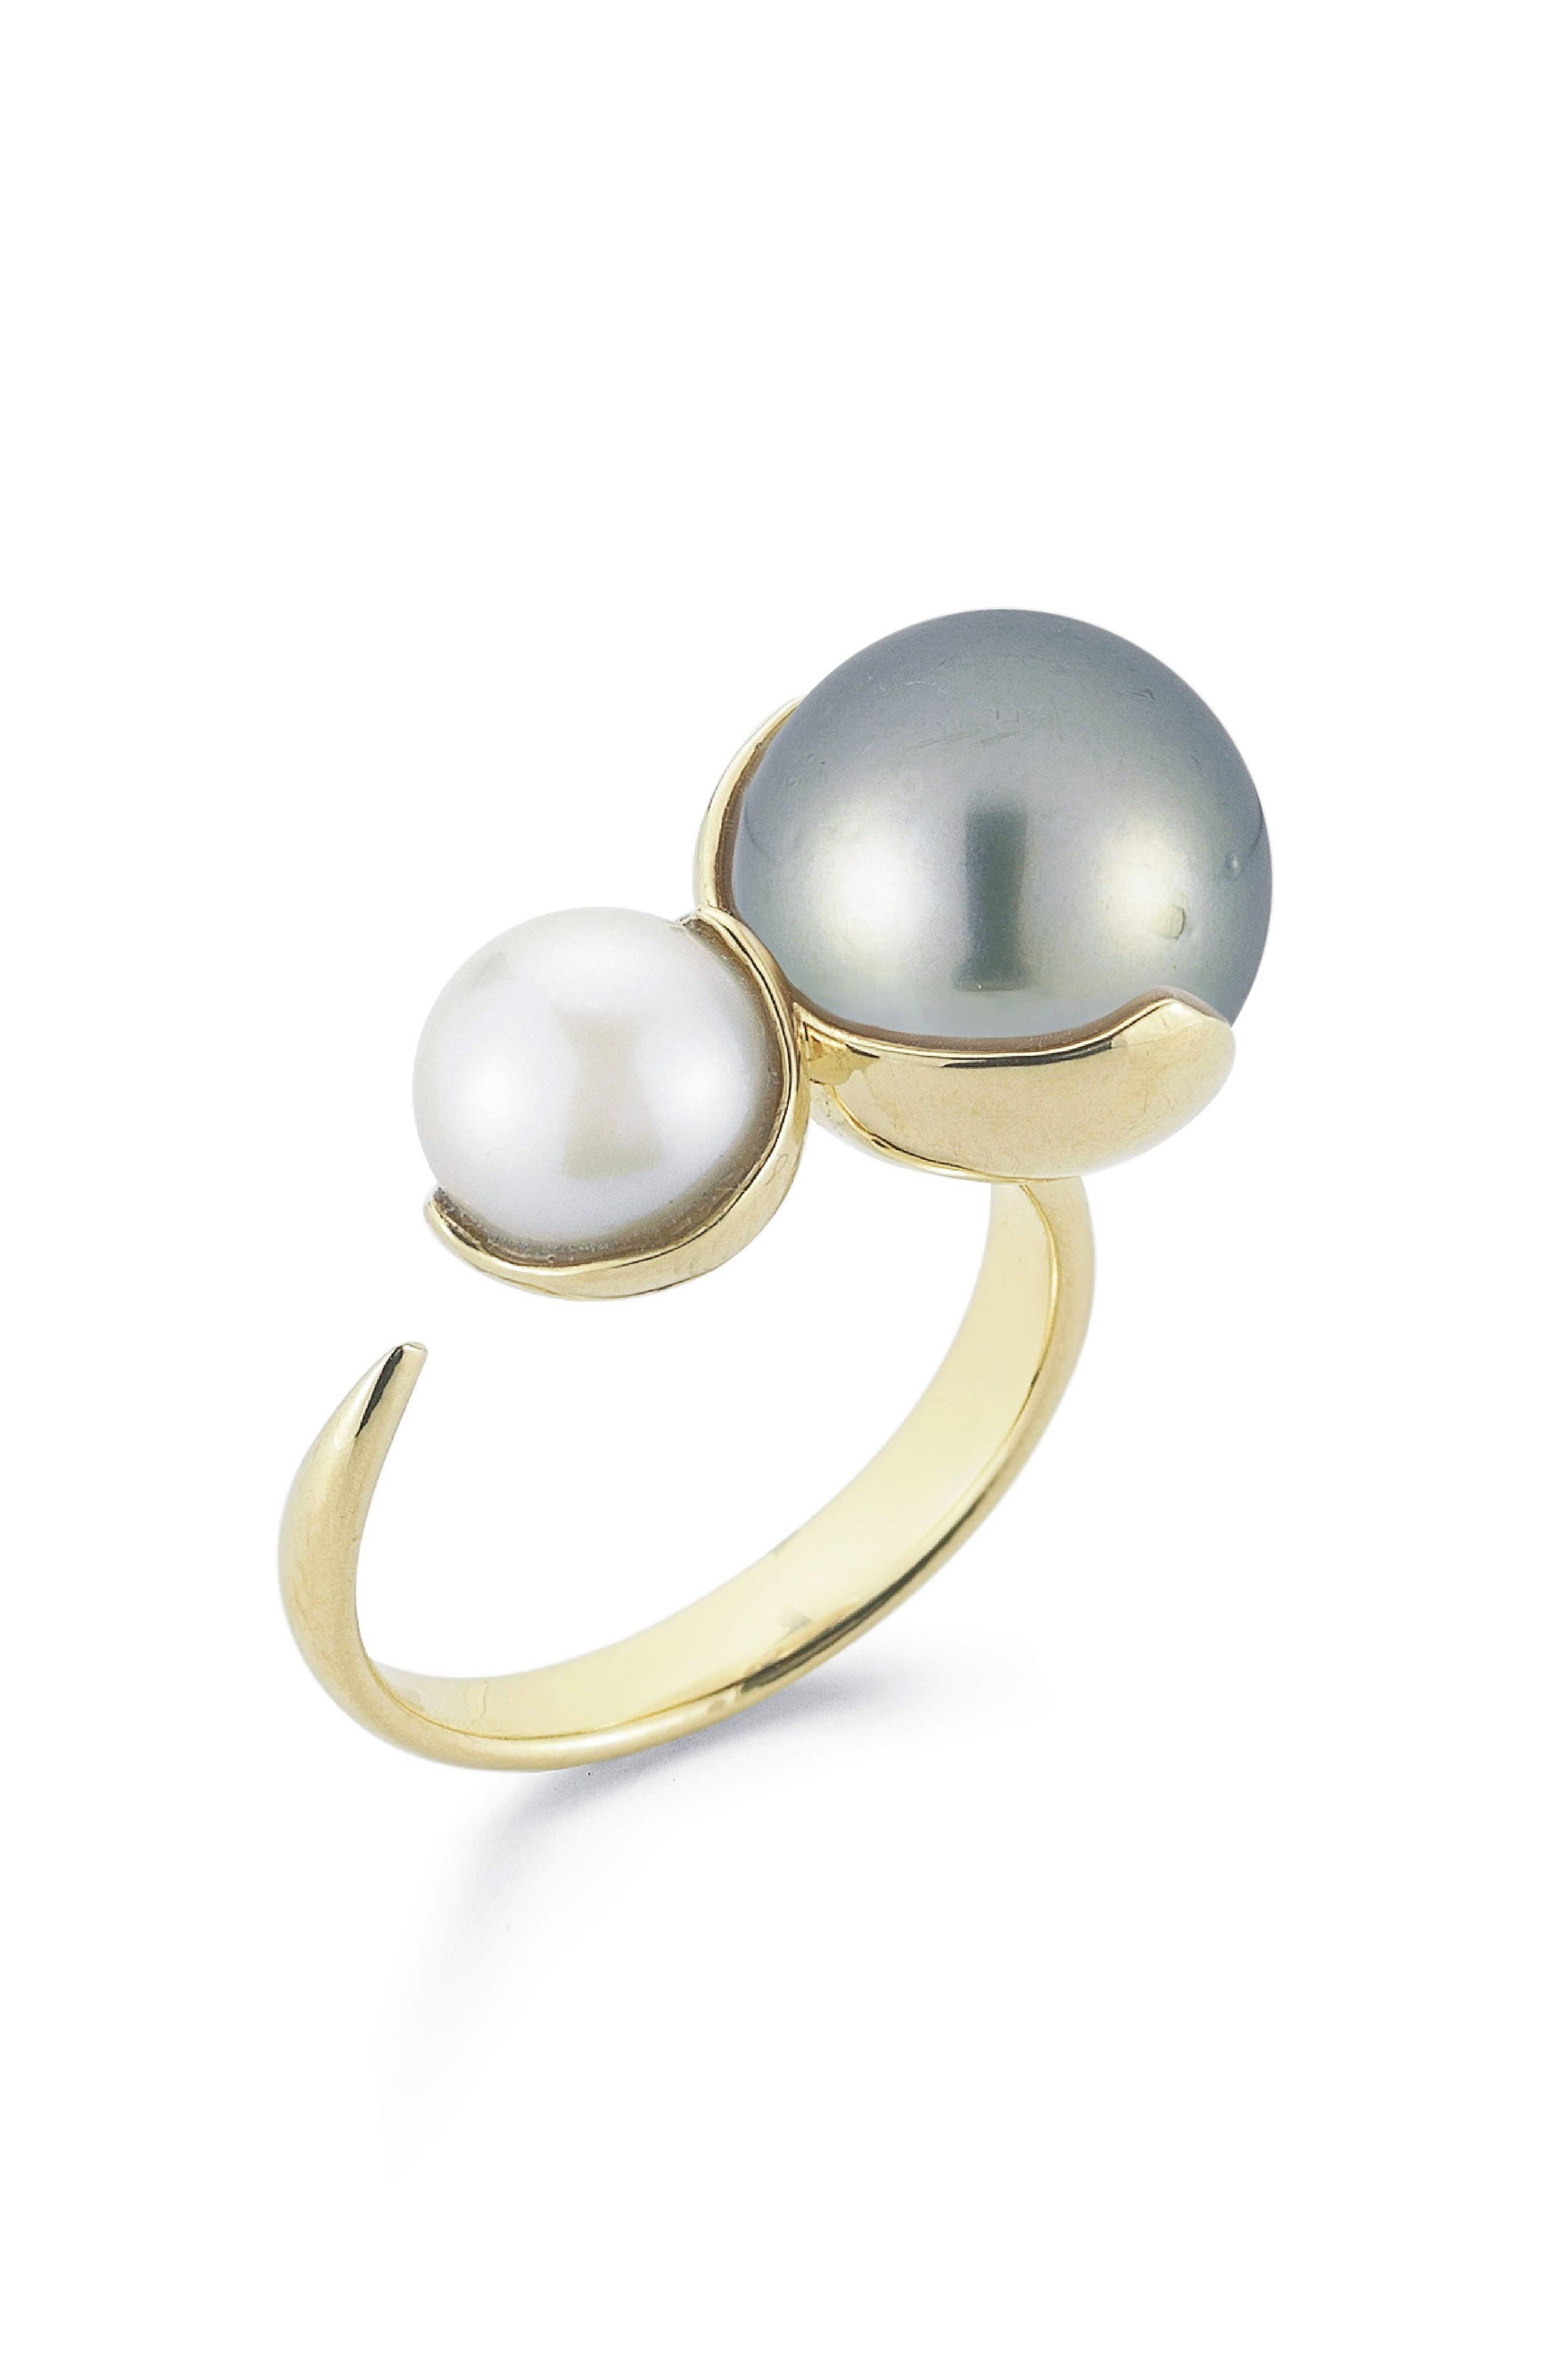 Openwork Pearl Ring,                         Main,                         color, White Pearl/ Black Pearl